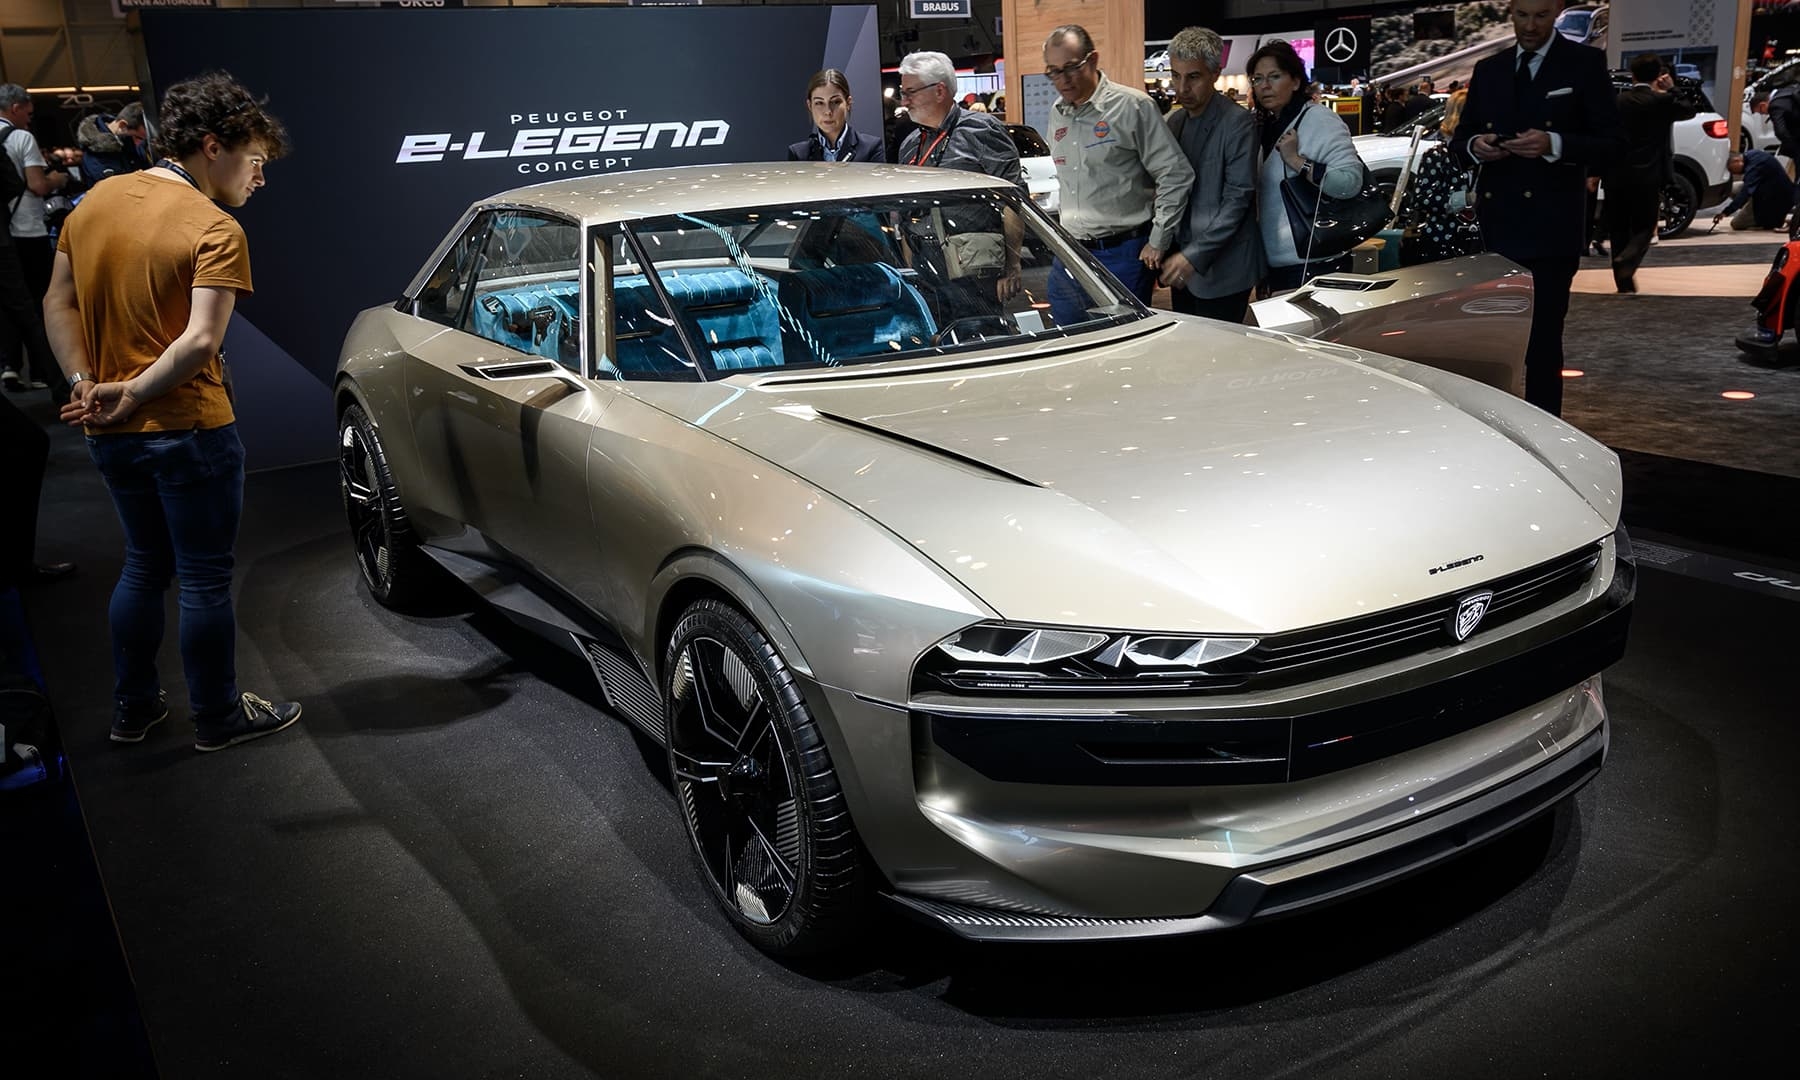 A Peugeot E-legend concept car is displayed at the booth of the French carmaker on March 5 ahead of the Geneva International Motor Show. — AFP